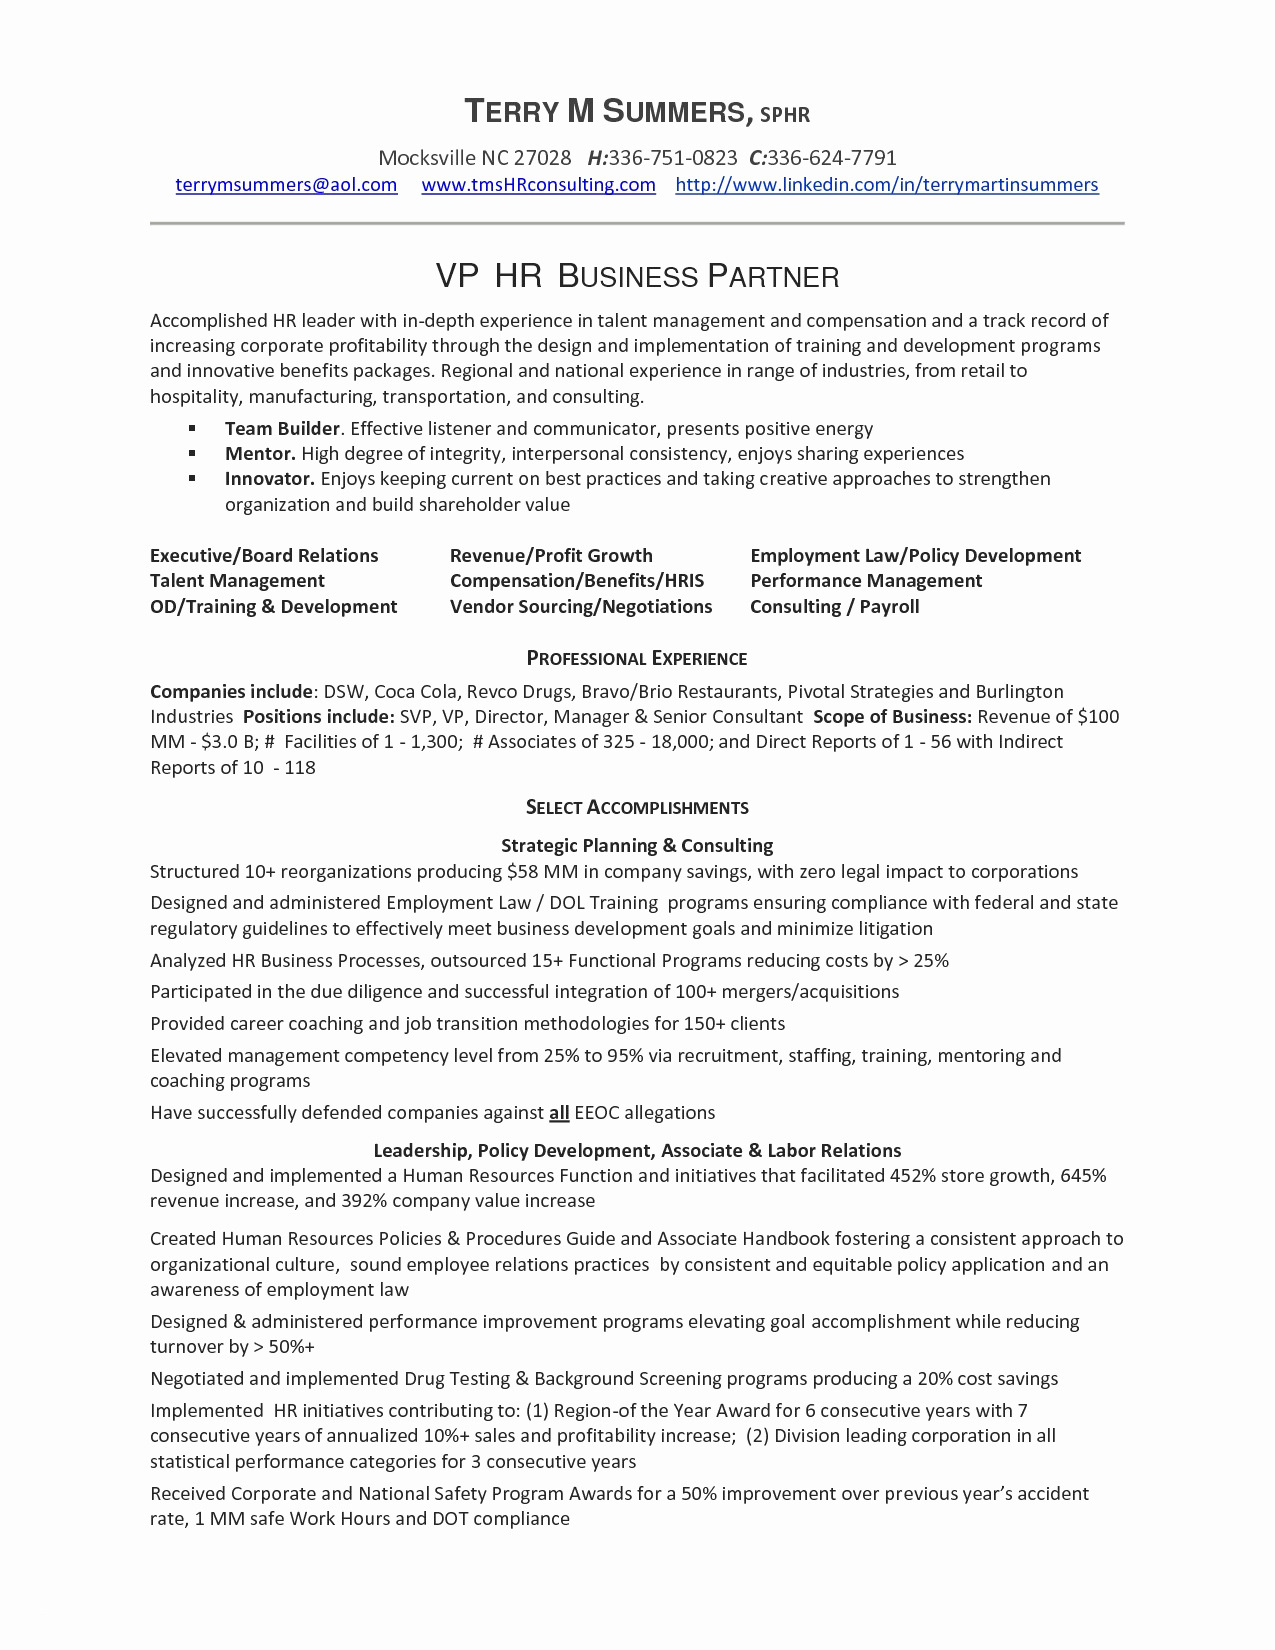 Hr Cover Letter Template - Hr Resume Examples Awesome Resume and Cover Letter Template Fresh